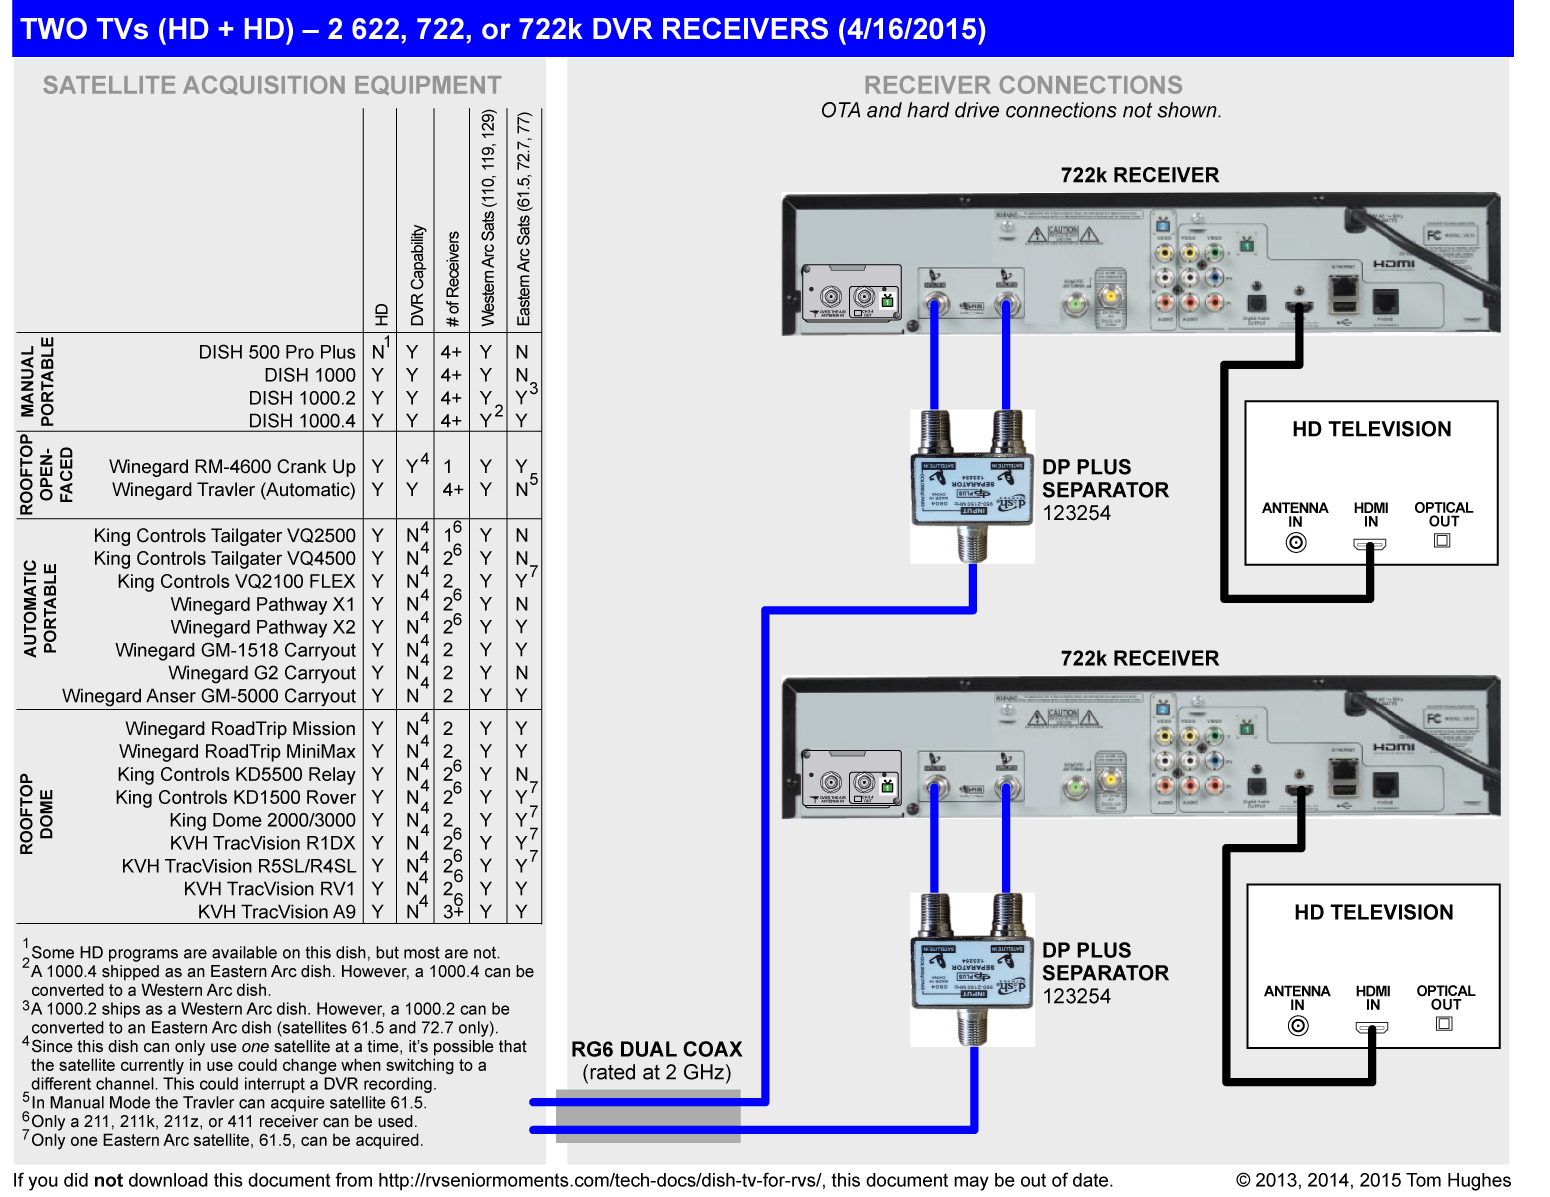 206_dish_twotvs_622_722_722k_hdhd720dpi wiring diagram dish network 722k readingrat net dish network dual receiver wiring diagram at readyjetset.co